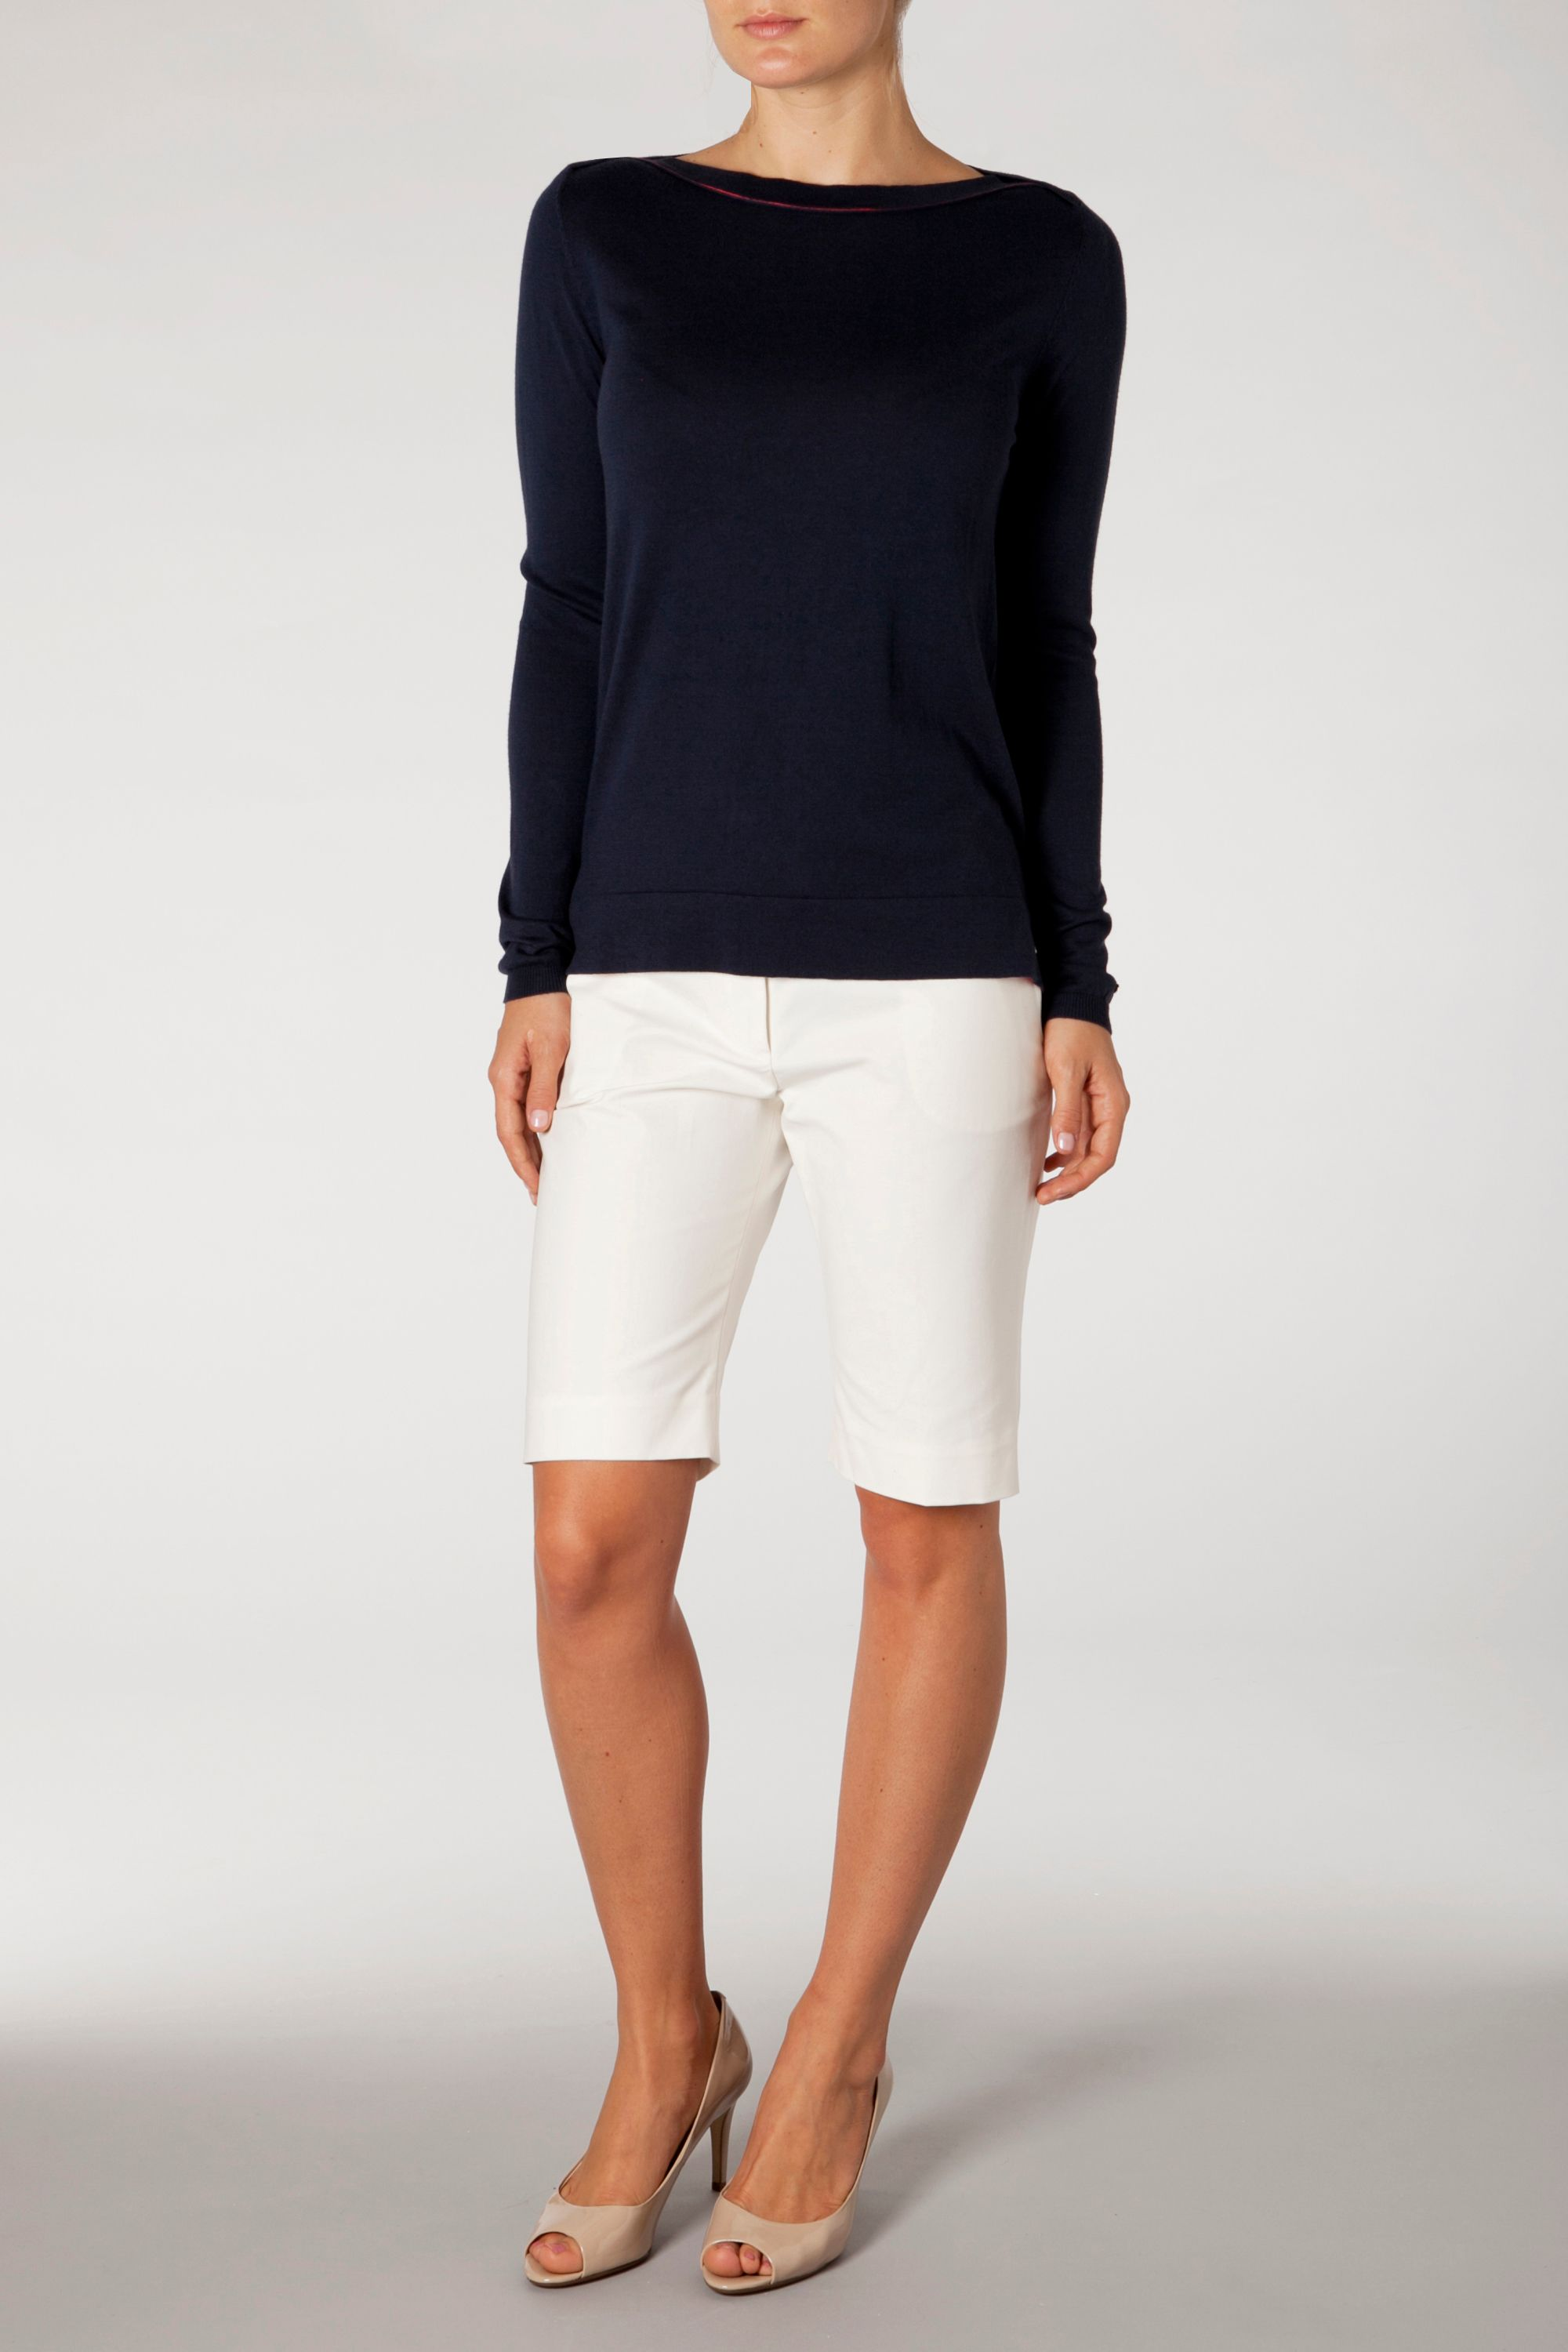 Palila boat neck top